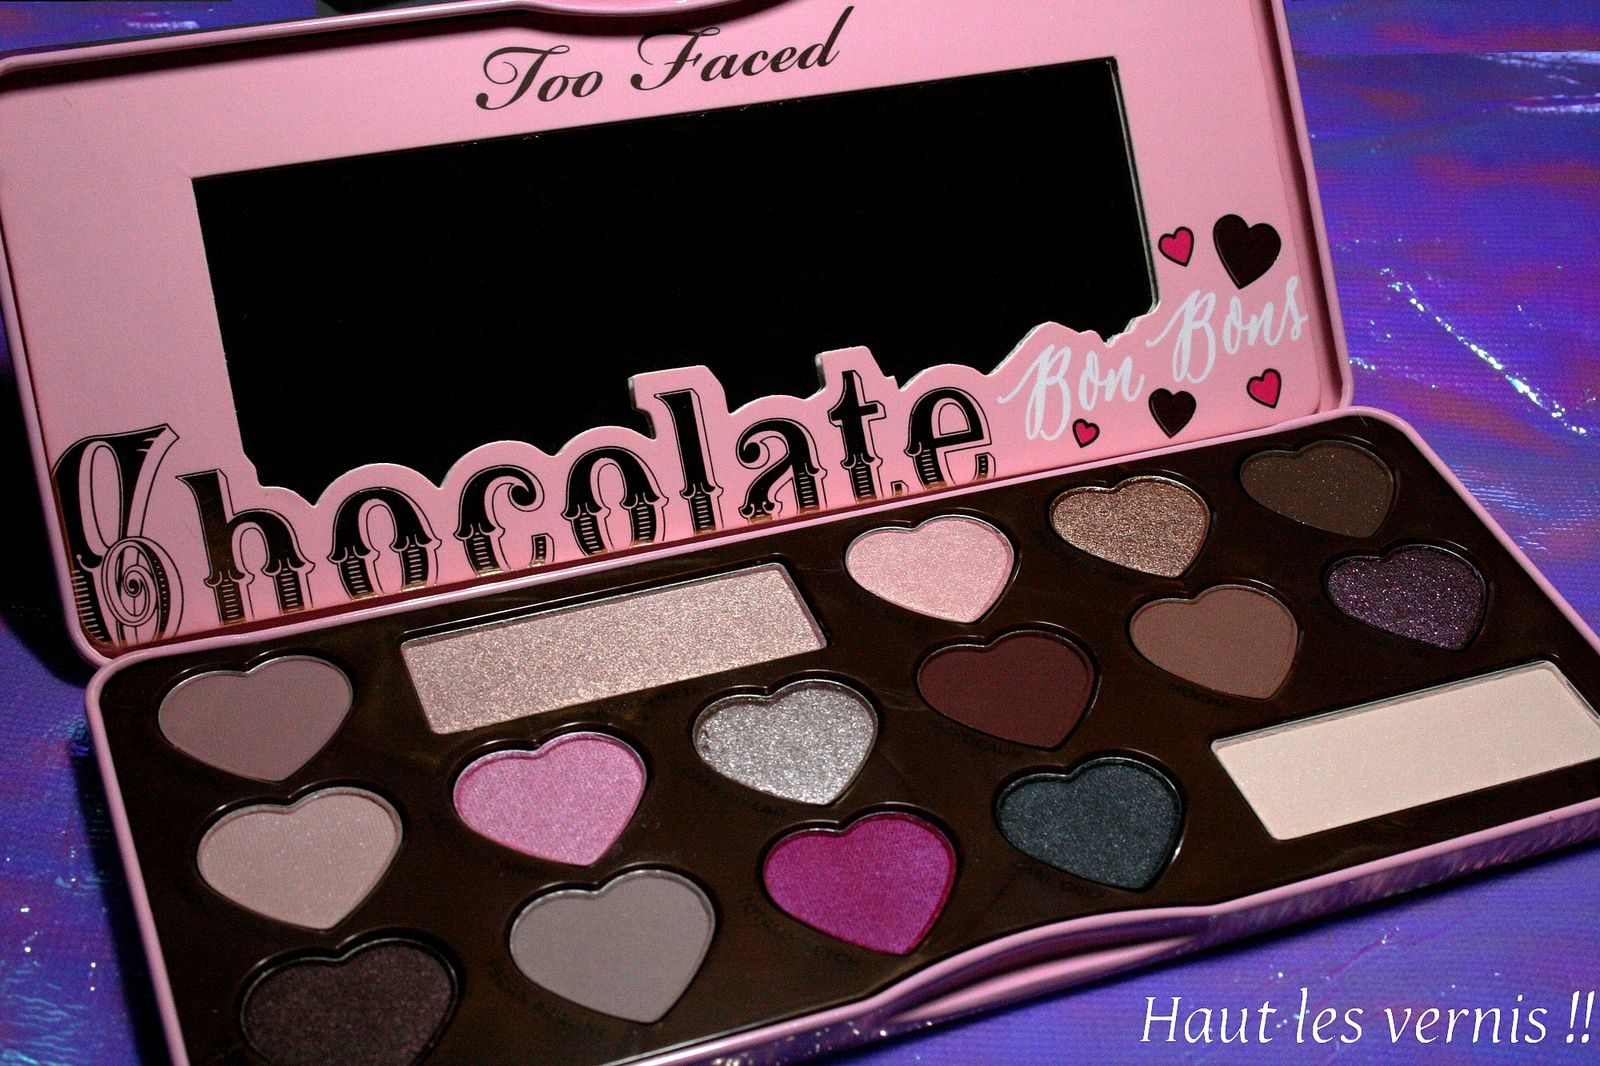 Chocolate Bonbons Too Faced....C'est demain!!